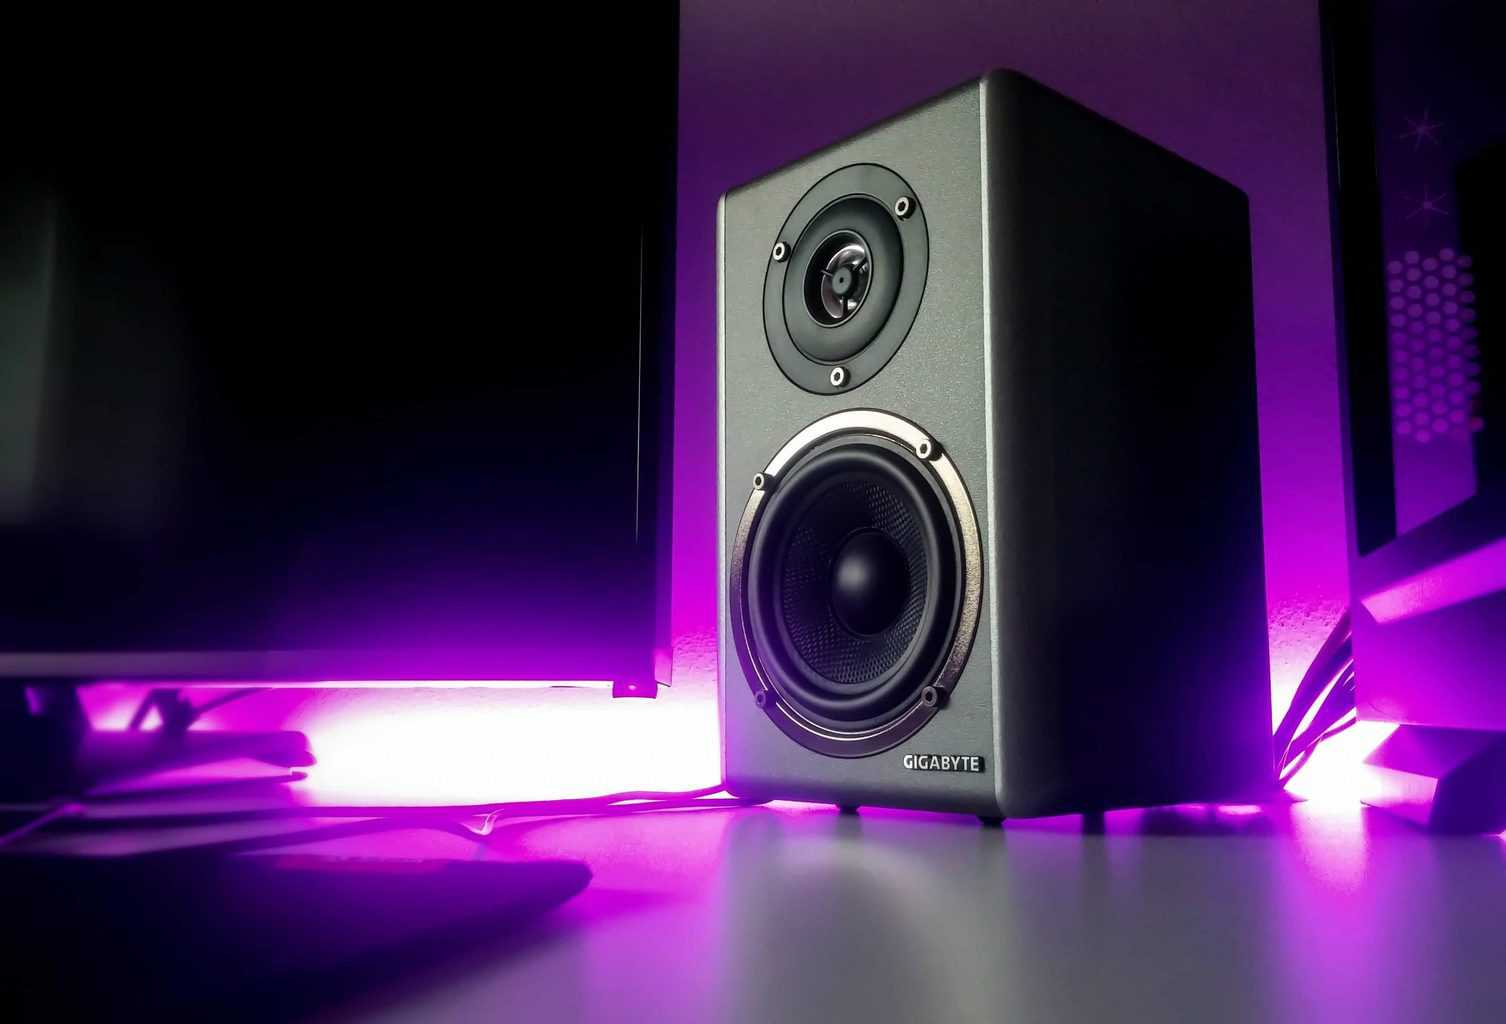 10 awesomely best Speakers for POP music